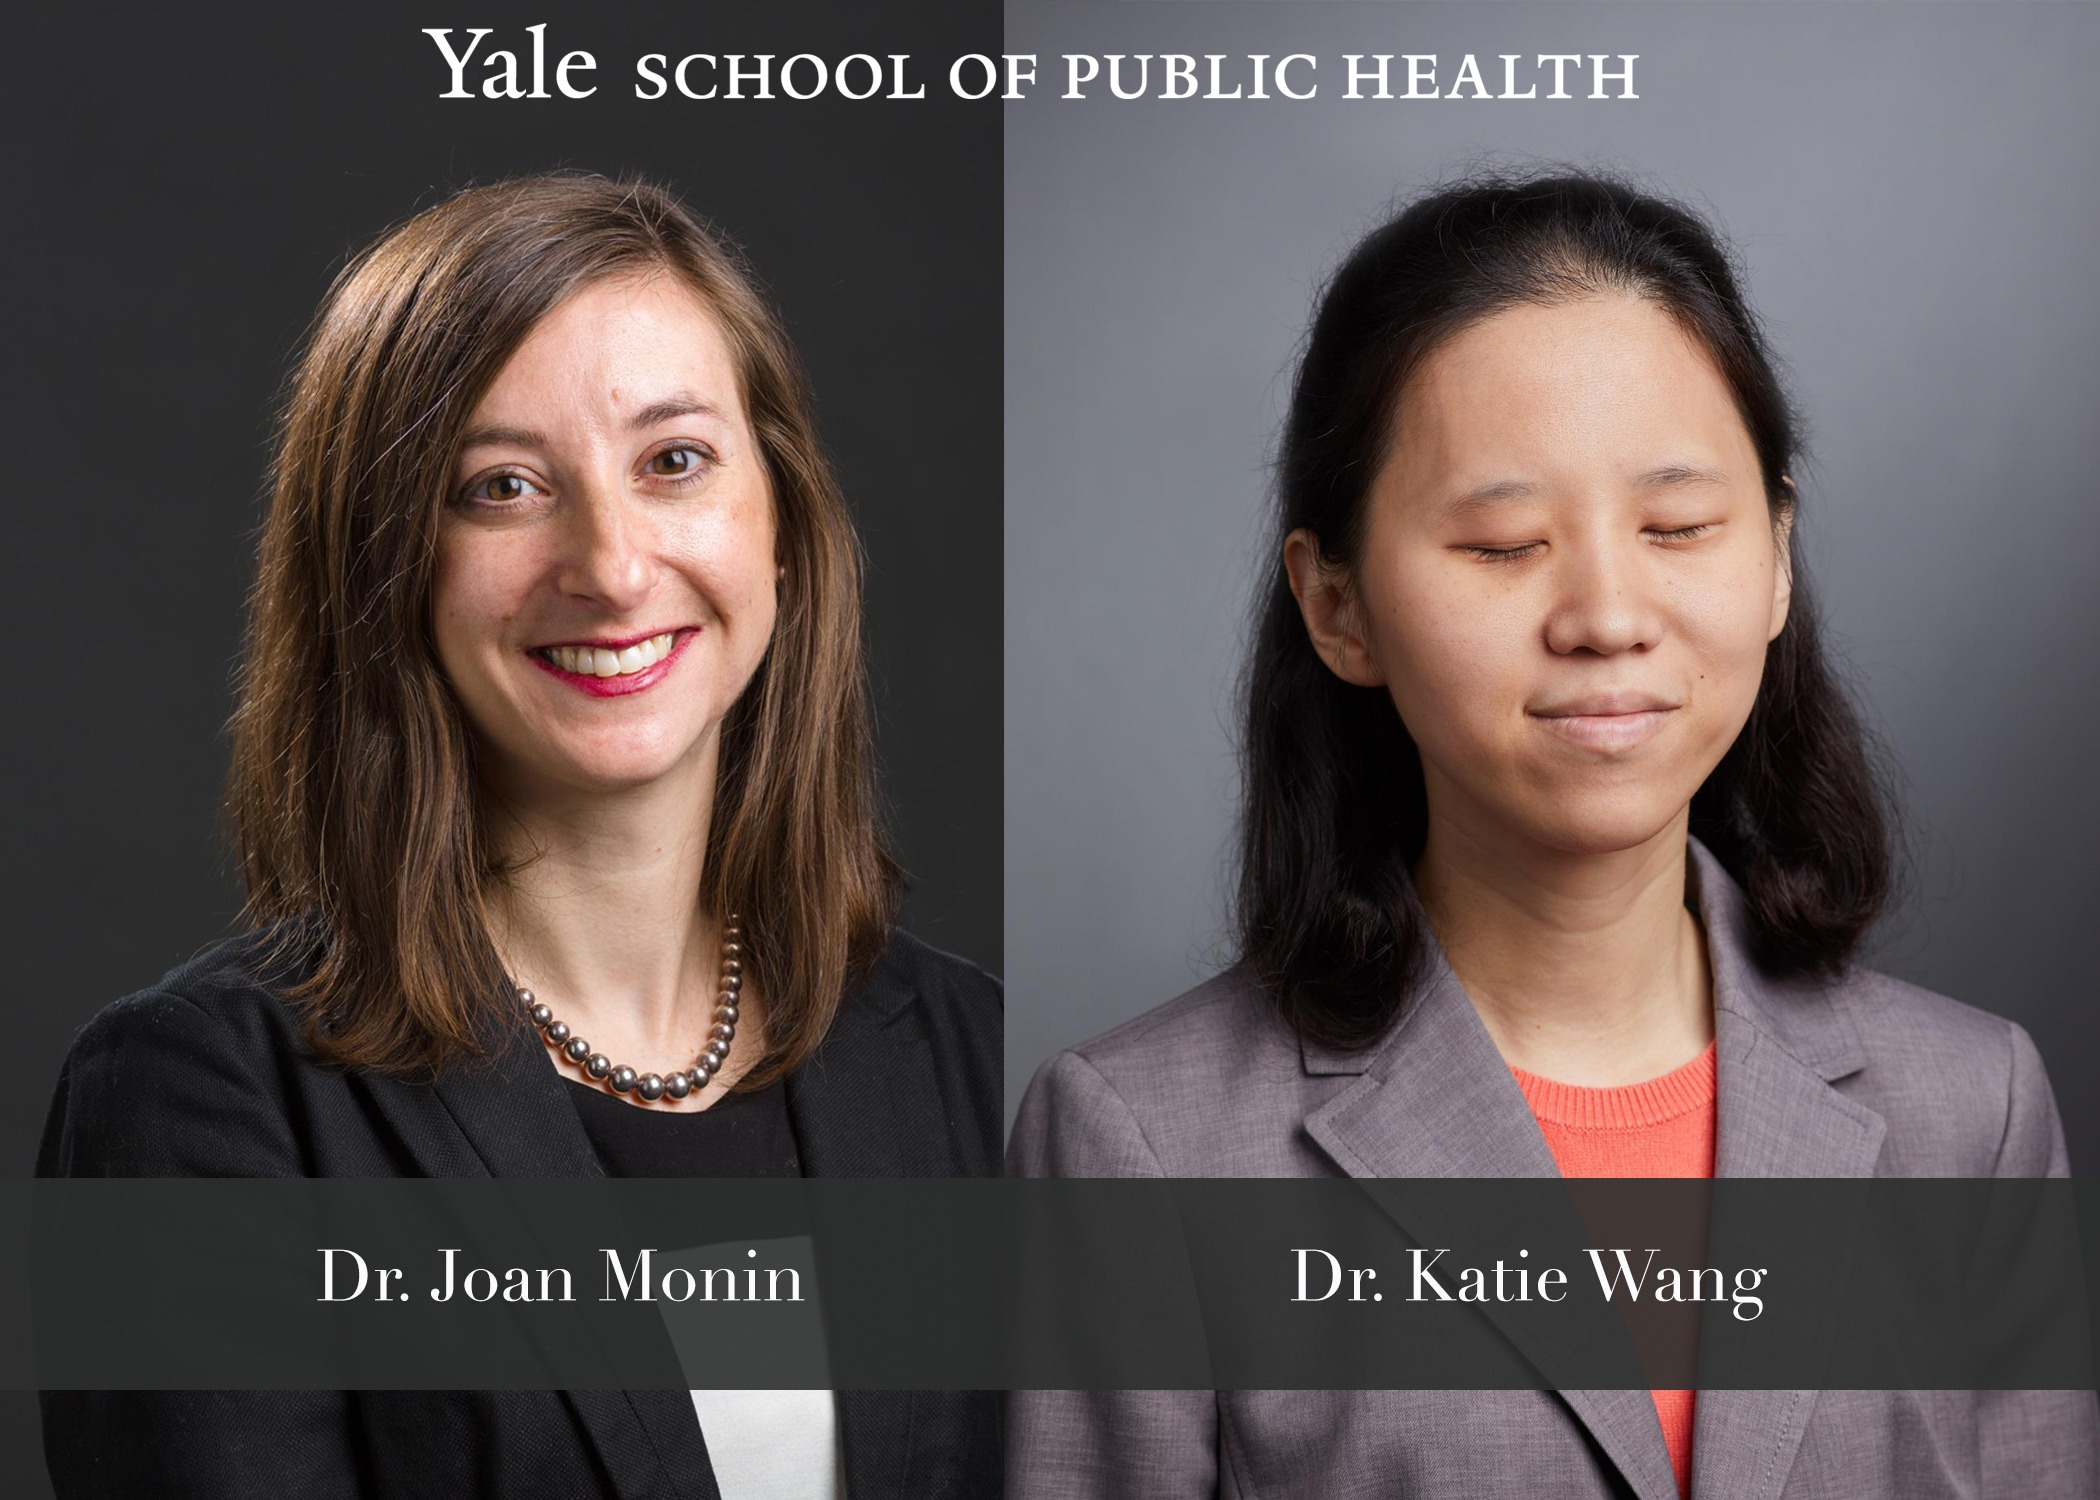 Dr. Joan Monin and Dr. Katie Wang